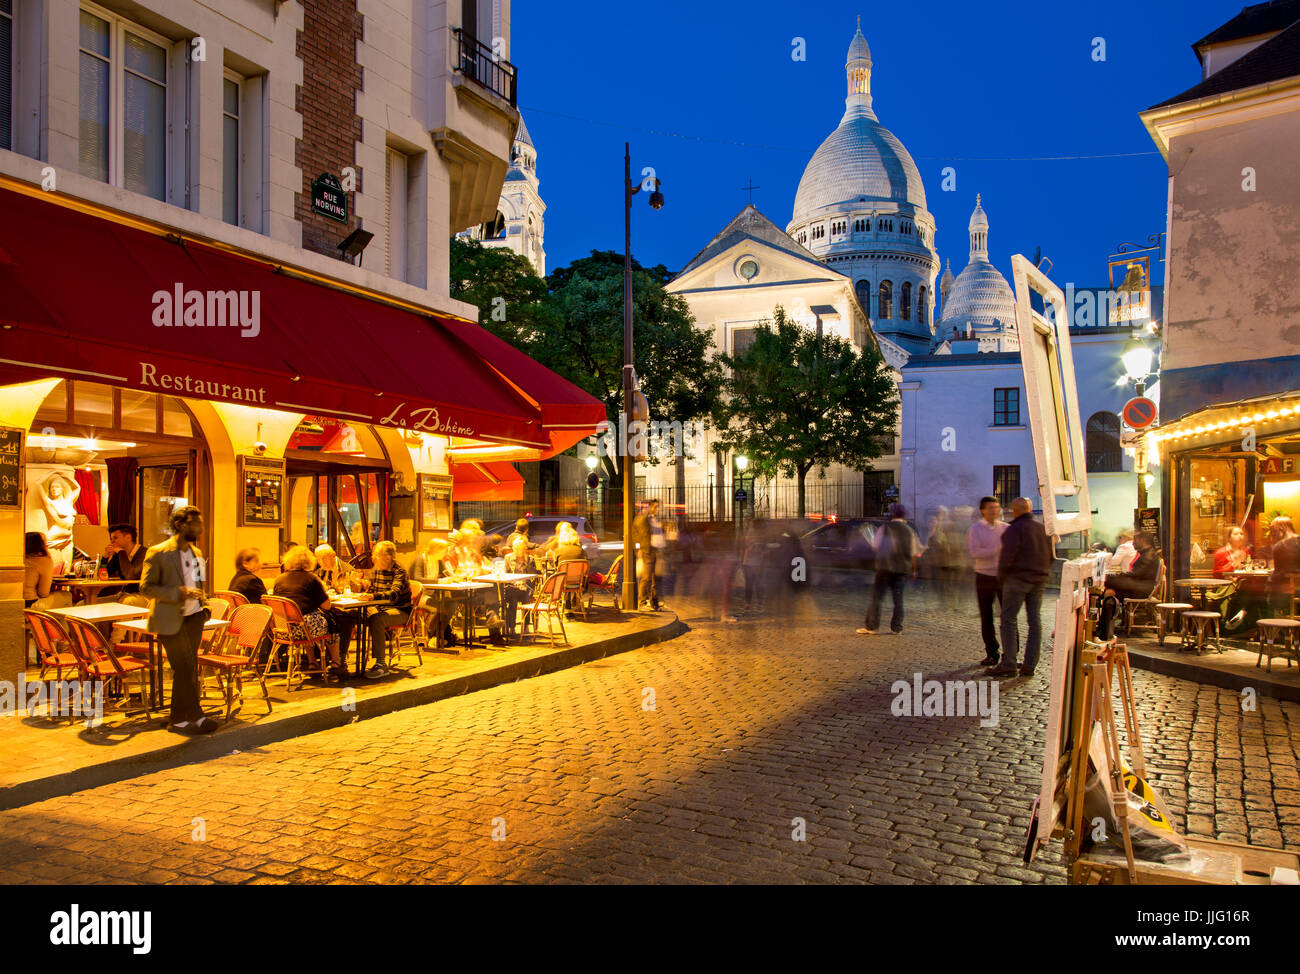 evening at place du tertre in village of montmartre paris stock photo 149098959 alamy. Black Bedroom Furniture Sets. Home Design Ideas